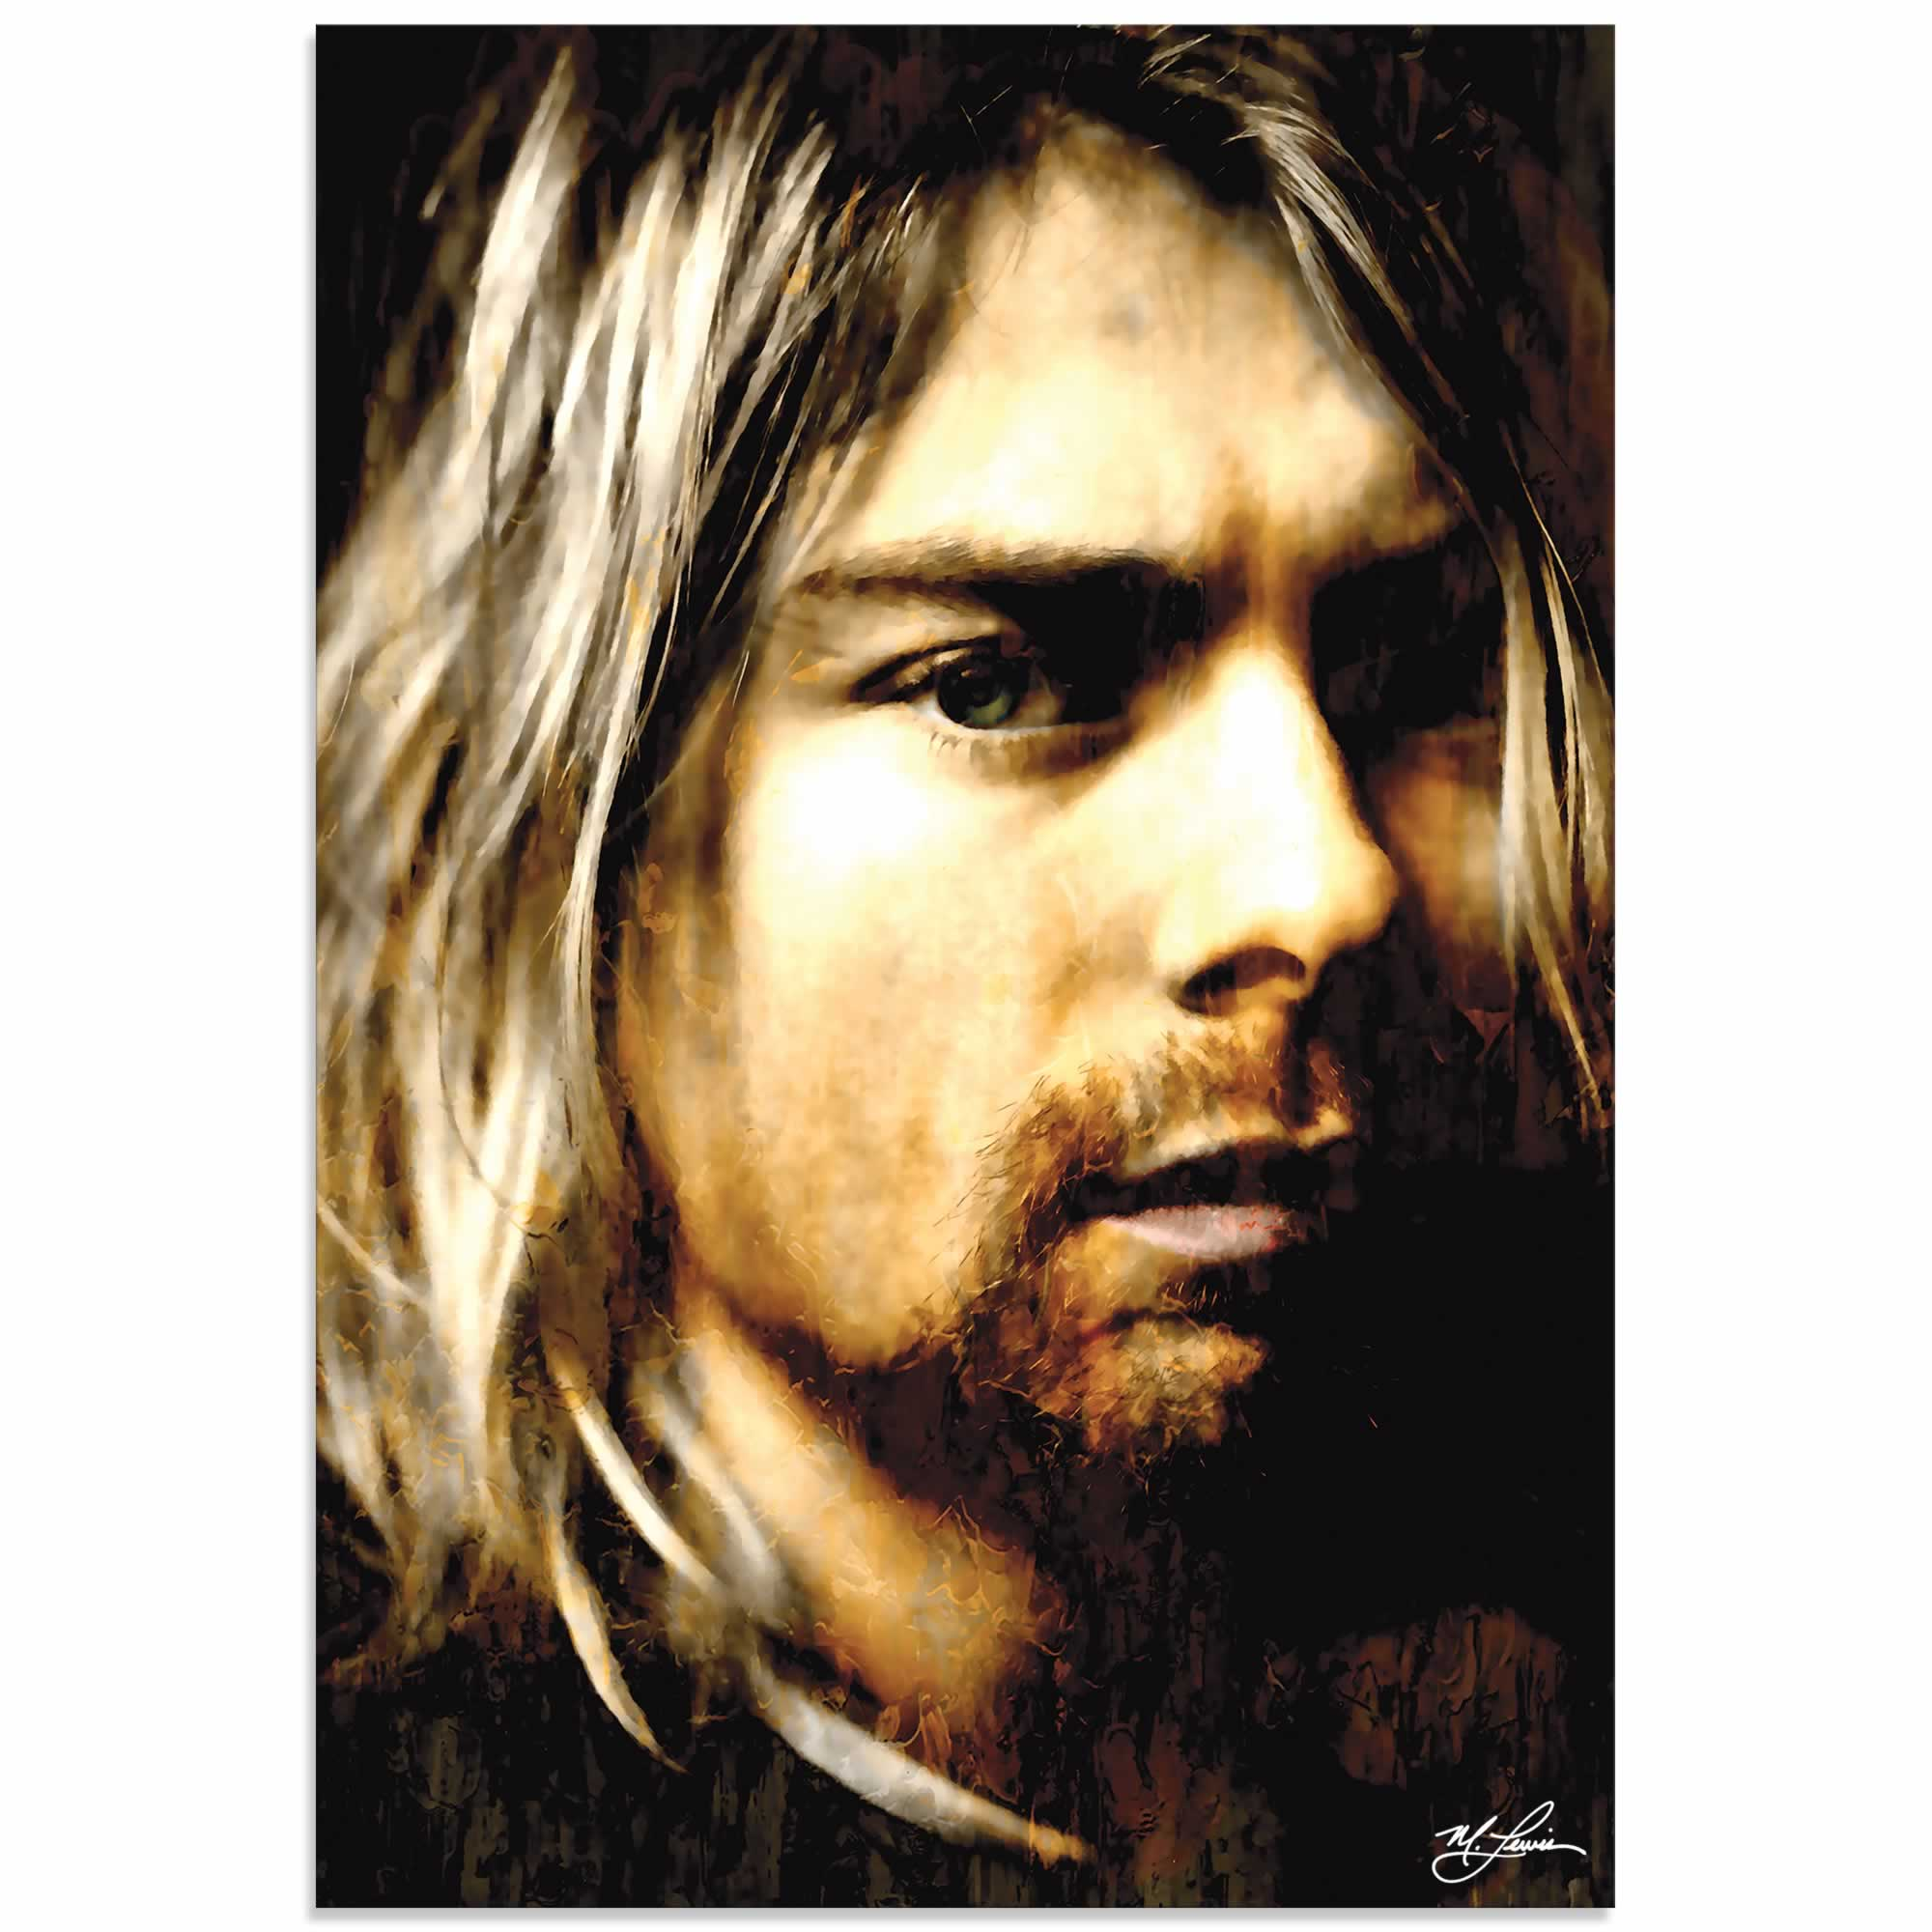 Kurt Cobain As Darkness Fell | Pop Art Painting by Mark Lewis, Signed & Numbered Limited Edition